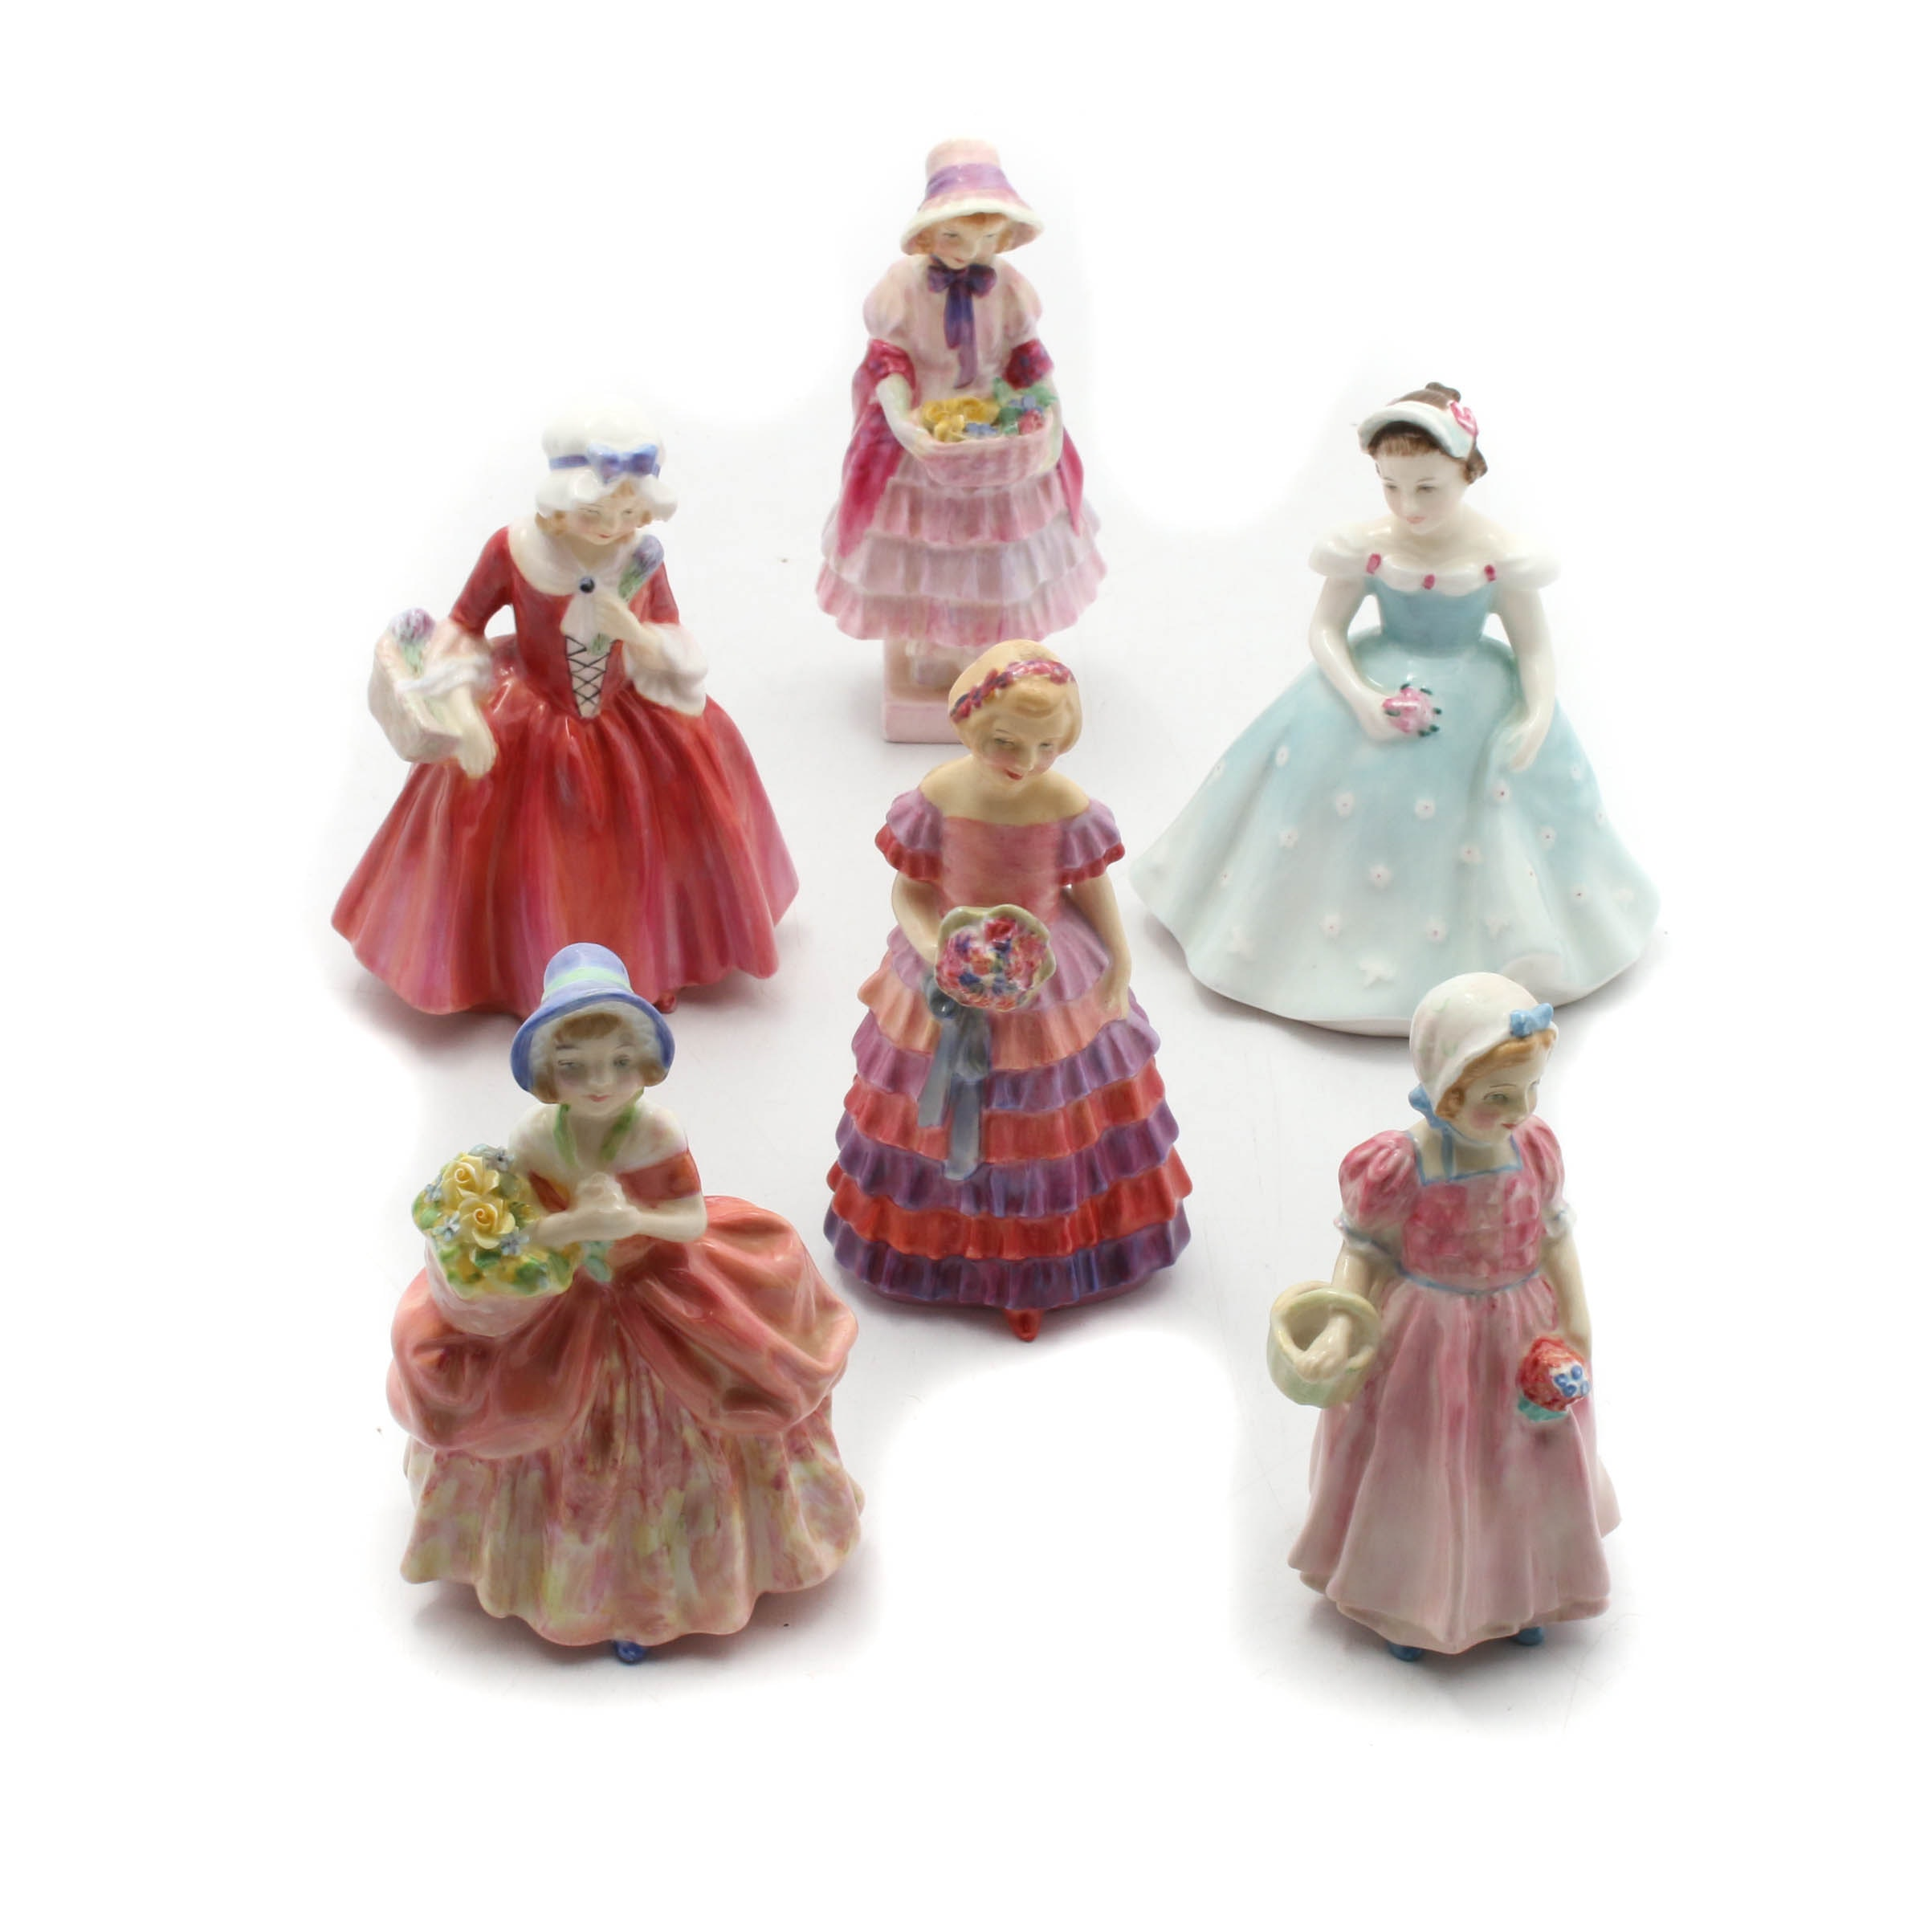 Royal Doulton Girls with Flowers Porcelain Figurines